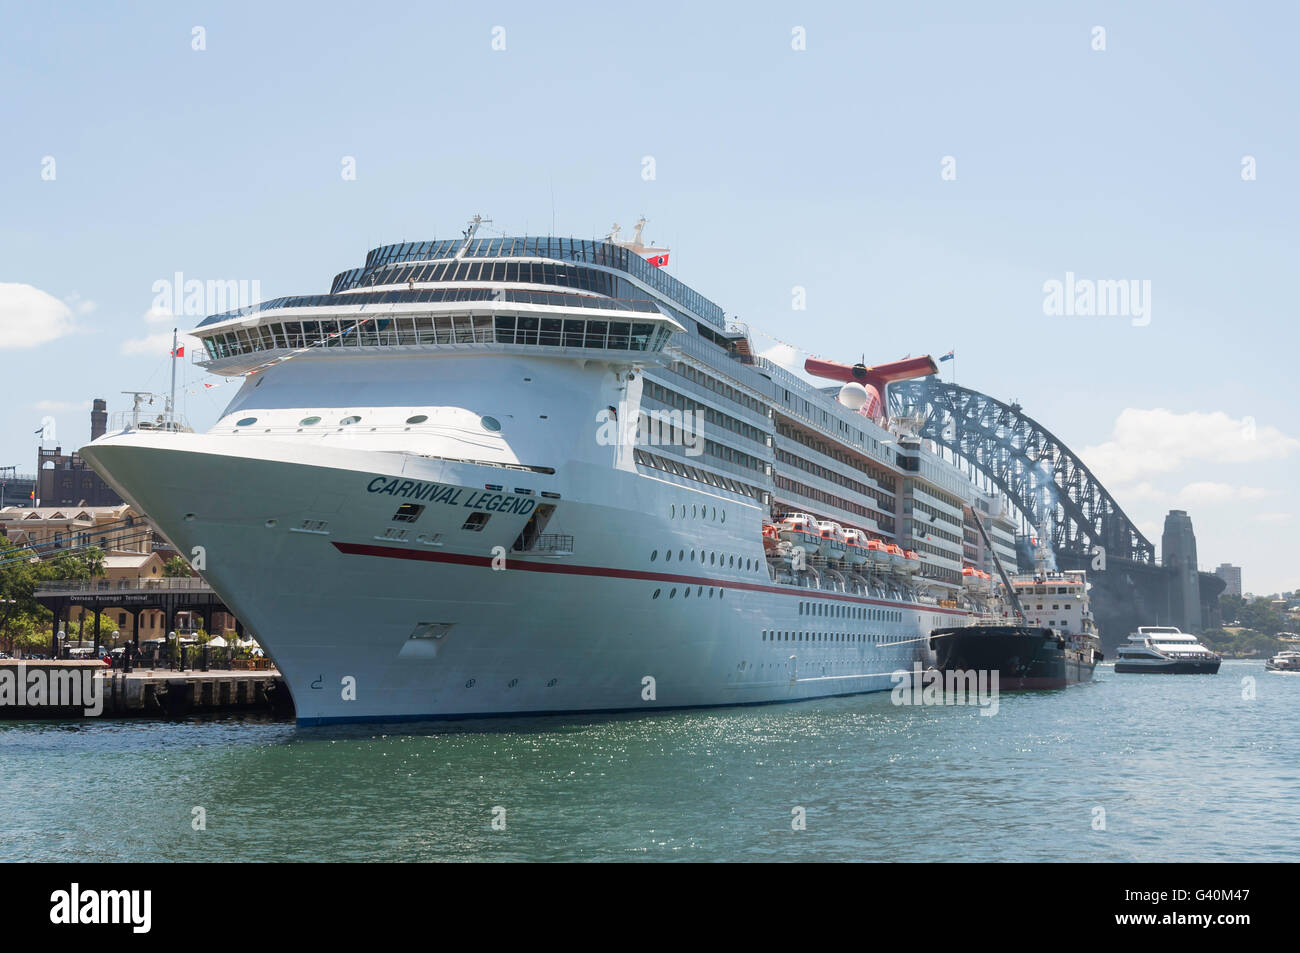 'Carnival Legend' cruise ship berthed at Circular Quay, Sydney Harbour, Sydney, New South Wales, Australia Stock Photo